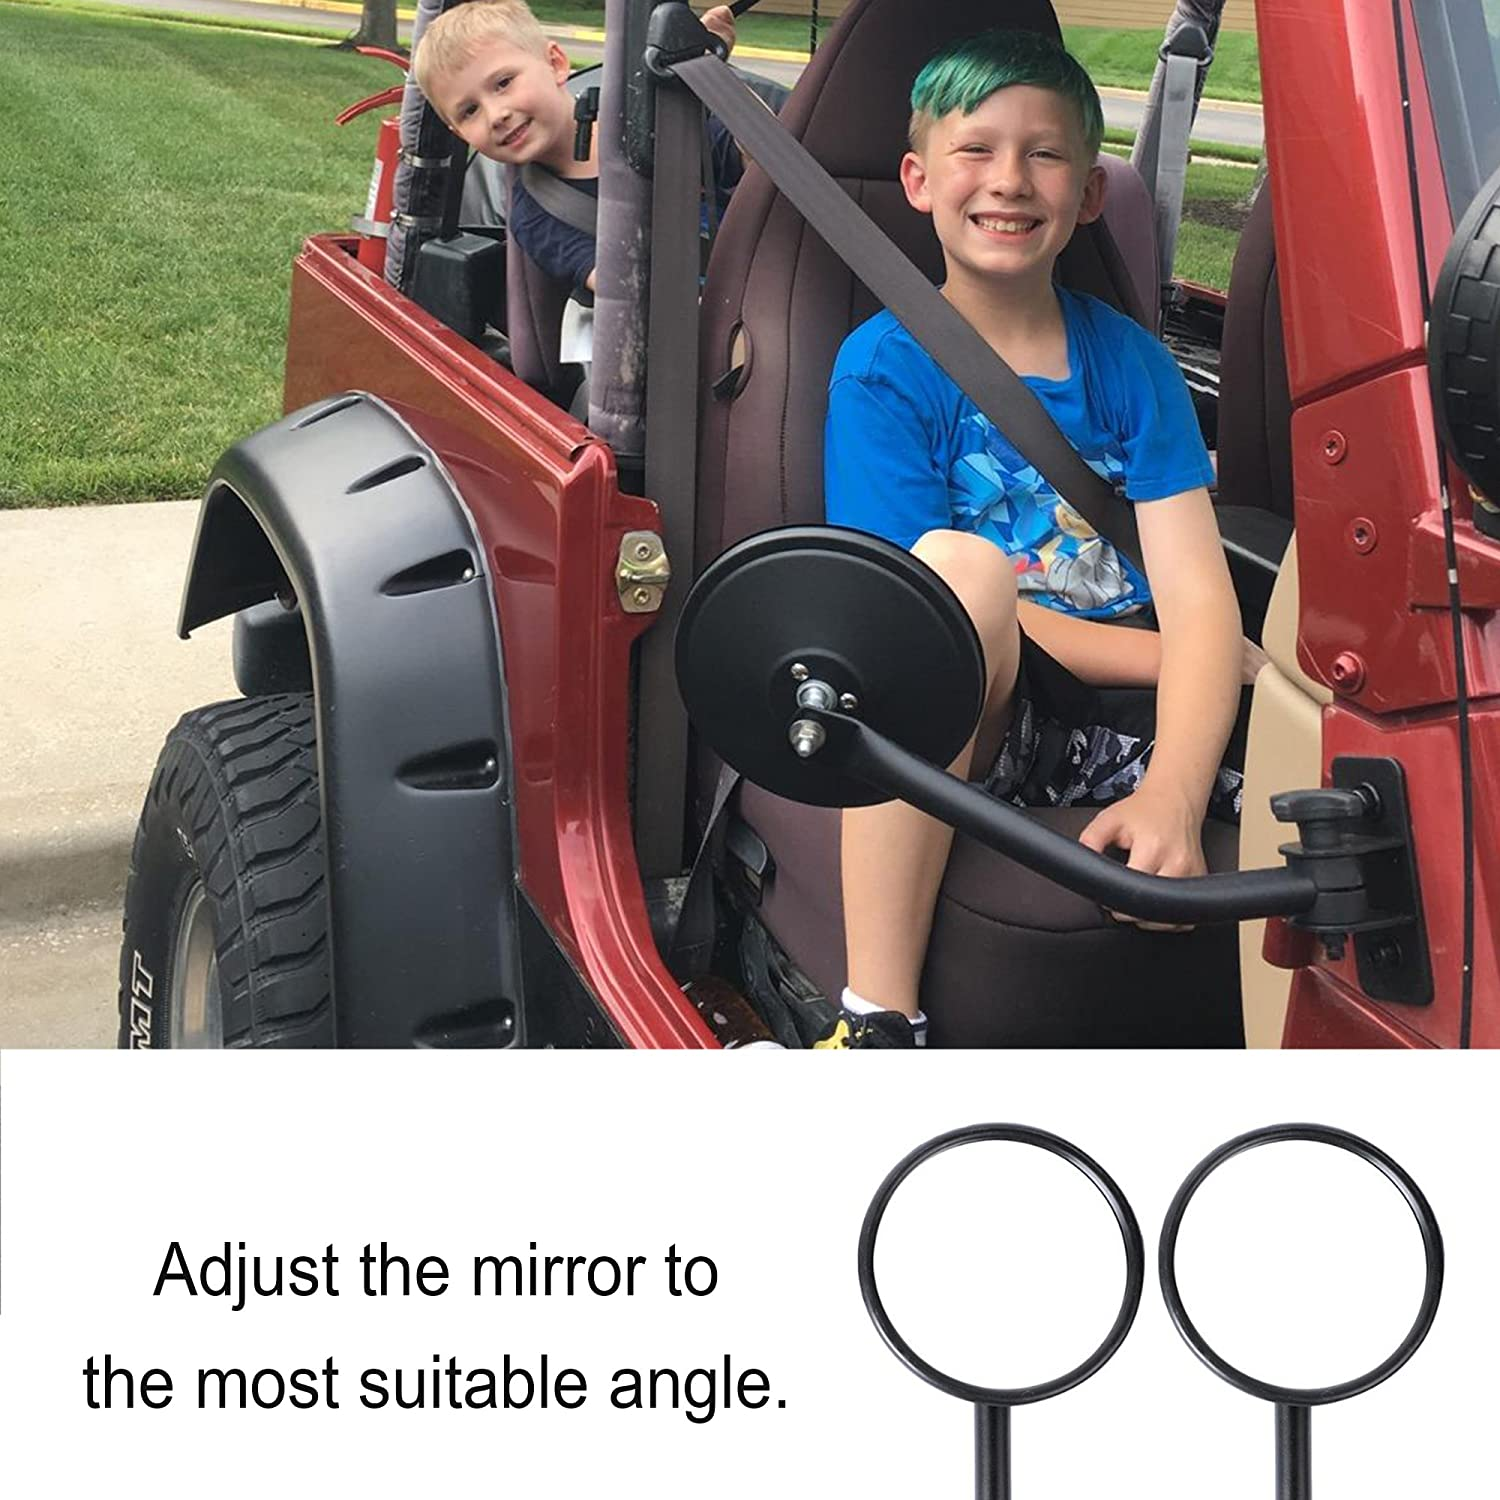 1 Pair Doors off Mirrors 4x4 Doorless Rectangular mirrors for jeep wrangler Side Mirrors for Jeep Qucik Release Mirrors for Jeep TJ JK-JKU CJ JL Textured Black iztor